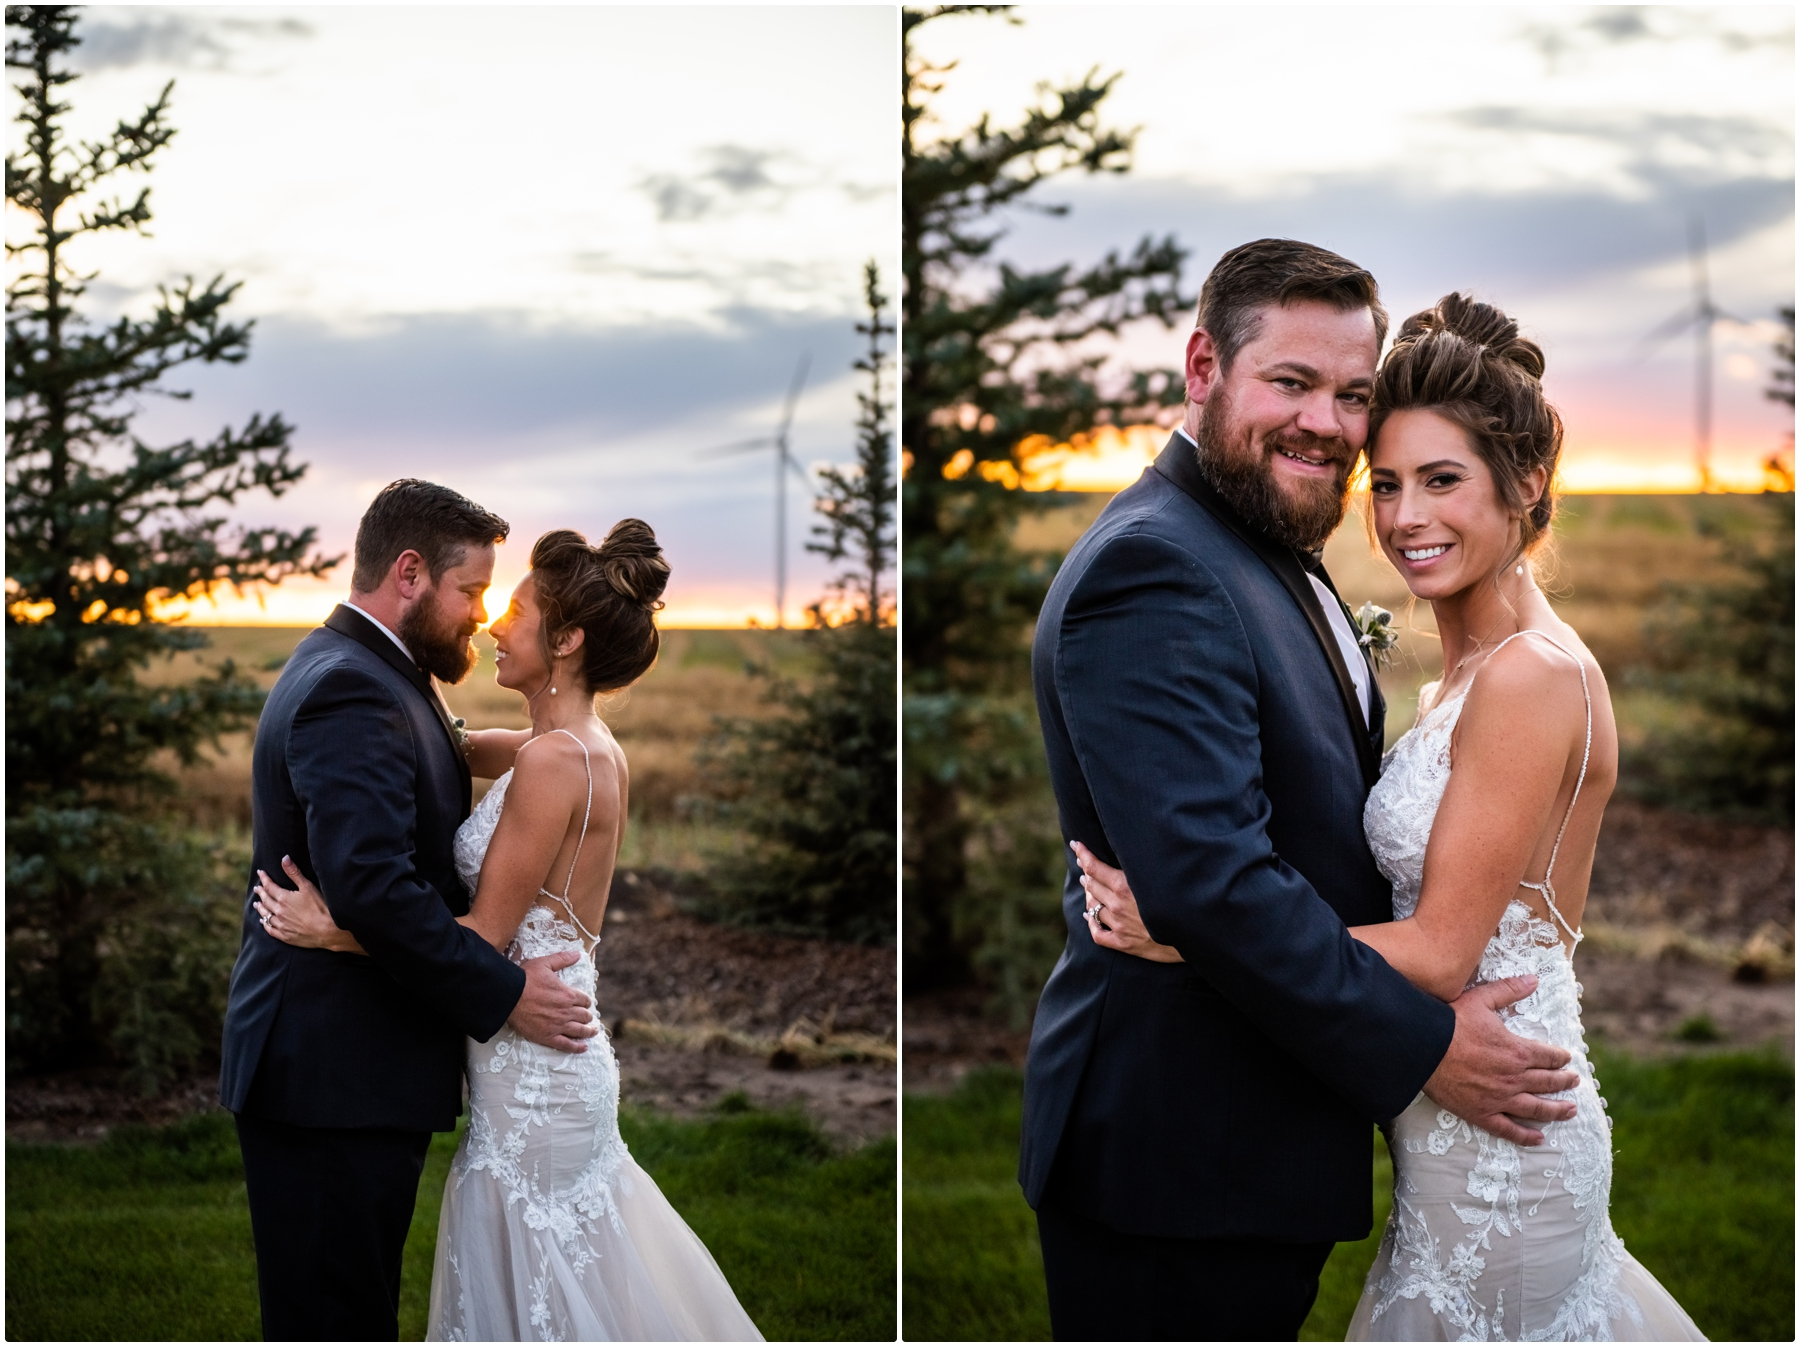 Sunset Barn Wedding Photography - Sweet Haven Barn